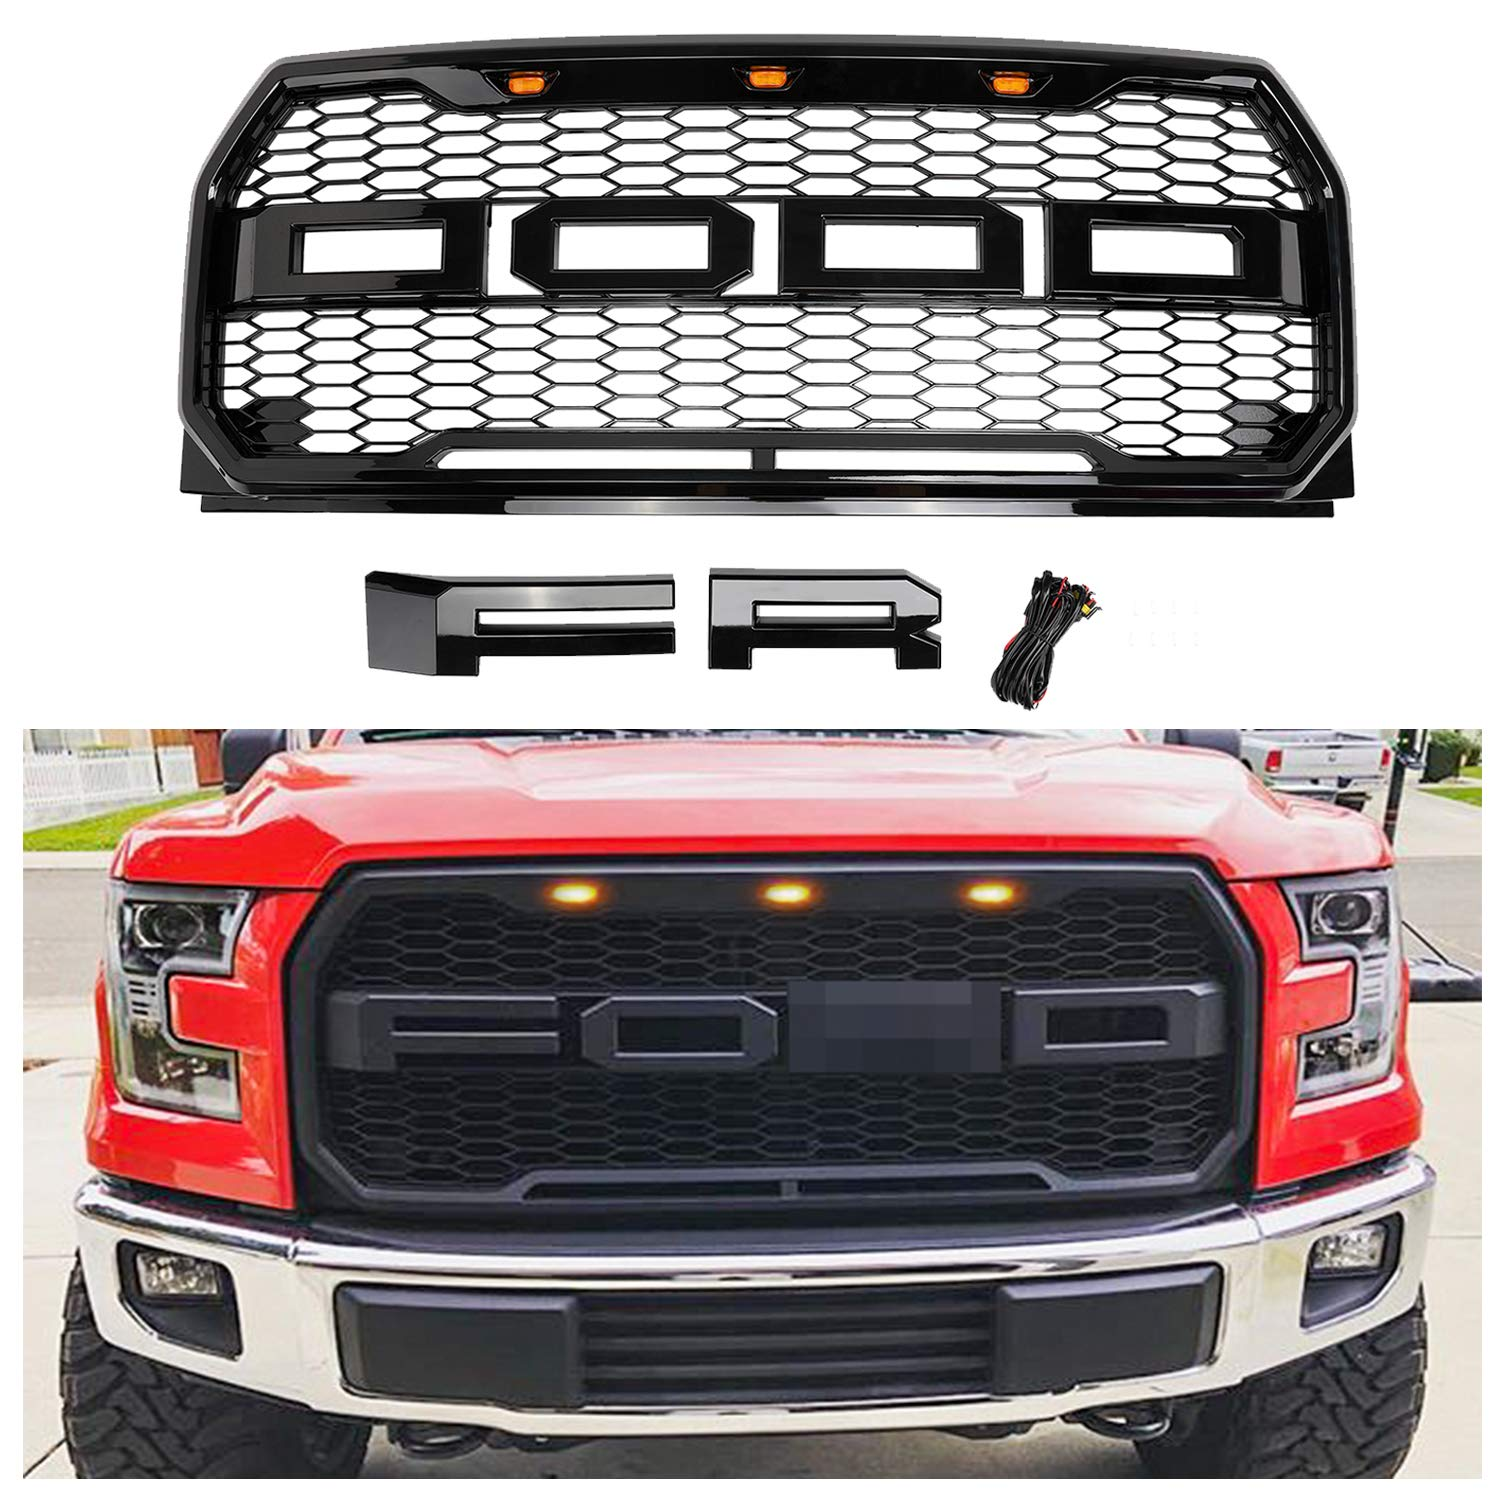 Grilles Gloss Black Front Grill for F150 2015 2016 2017 Raptor ...